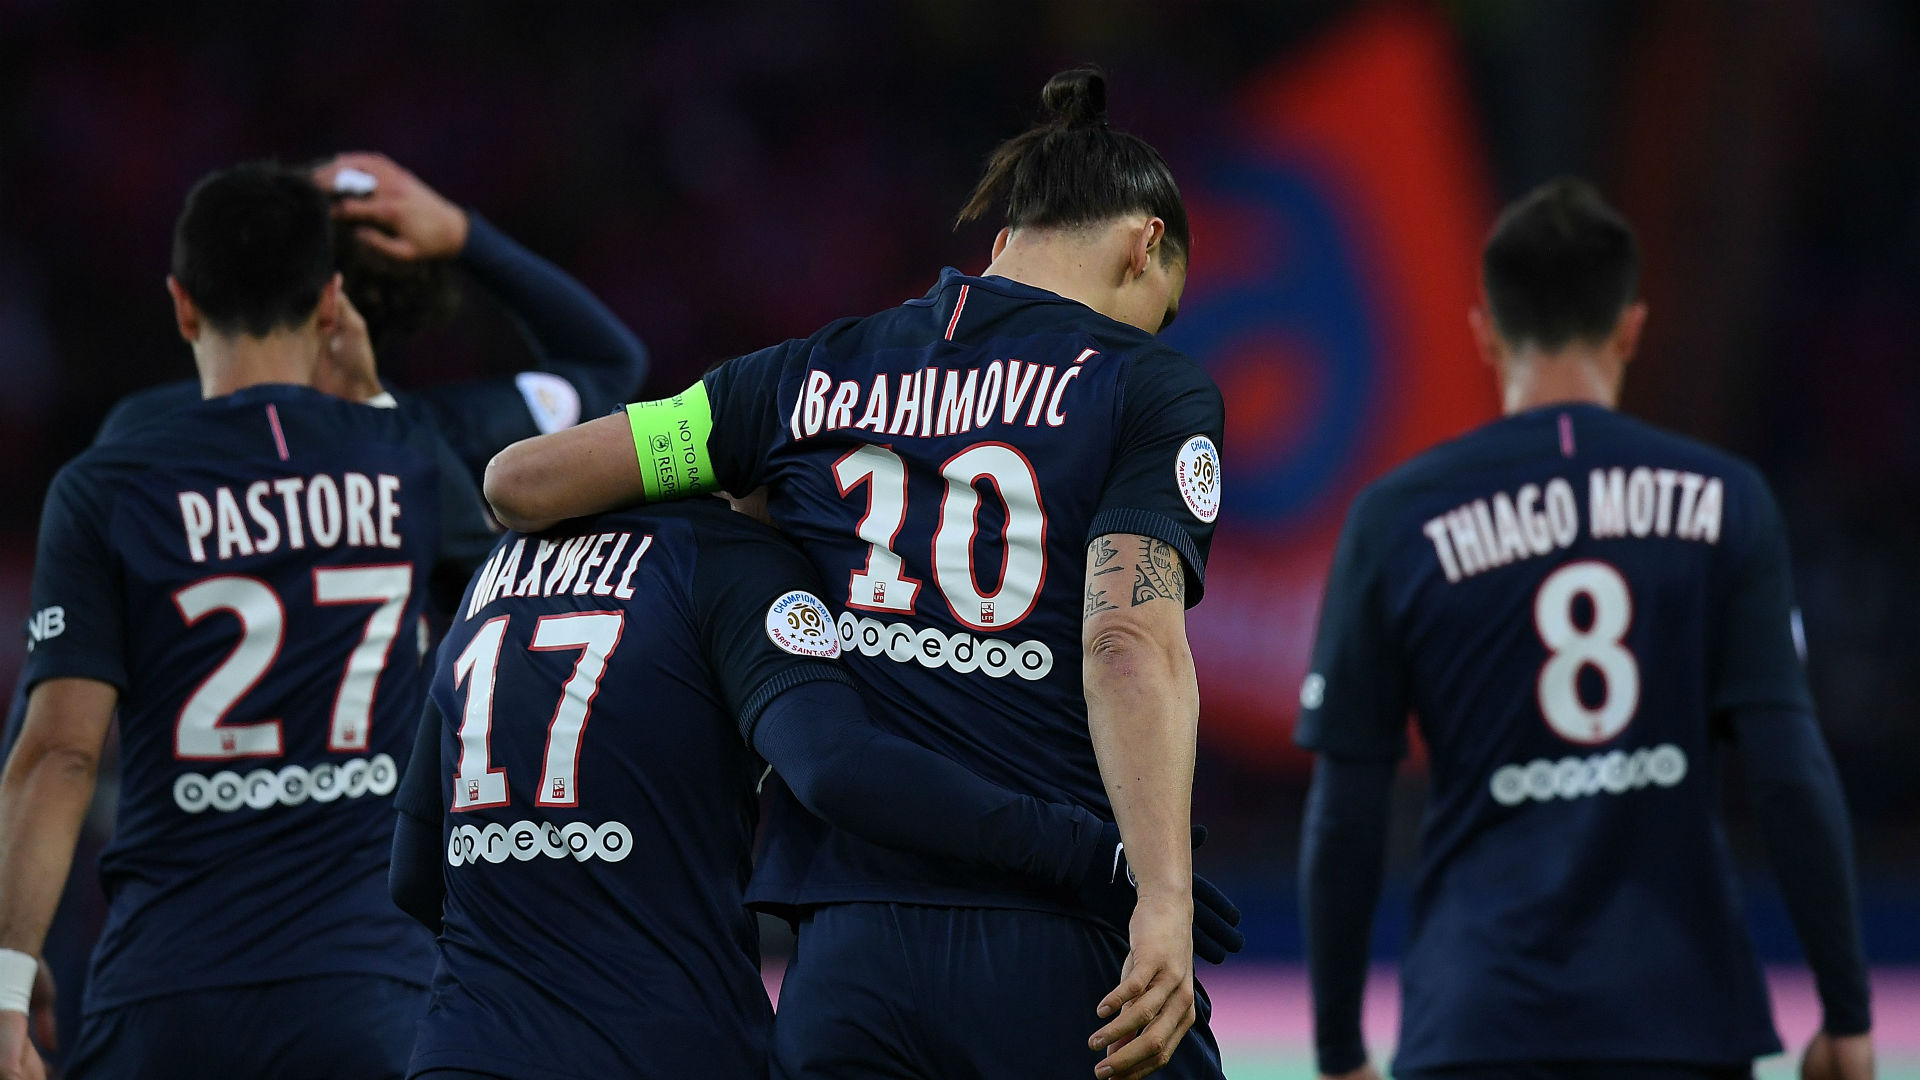 Mercato - PSG : Quand Ibrahimovic rend un vibrant hommage à Maxwell…